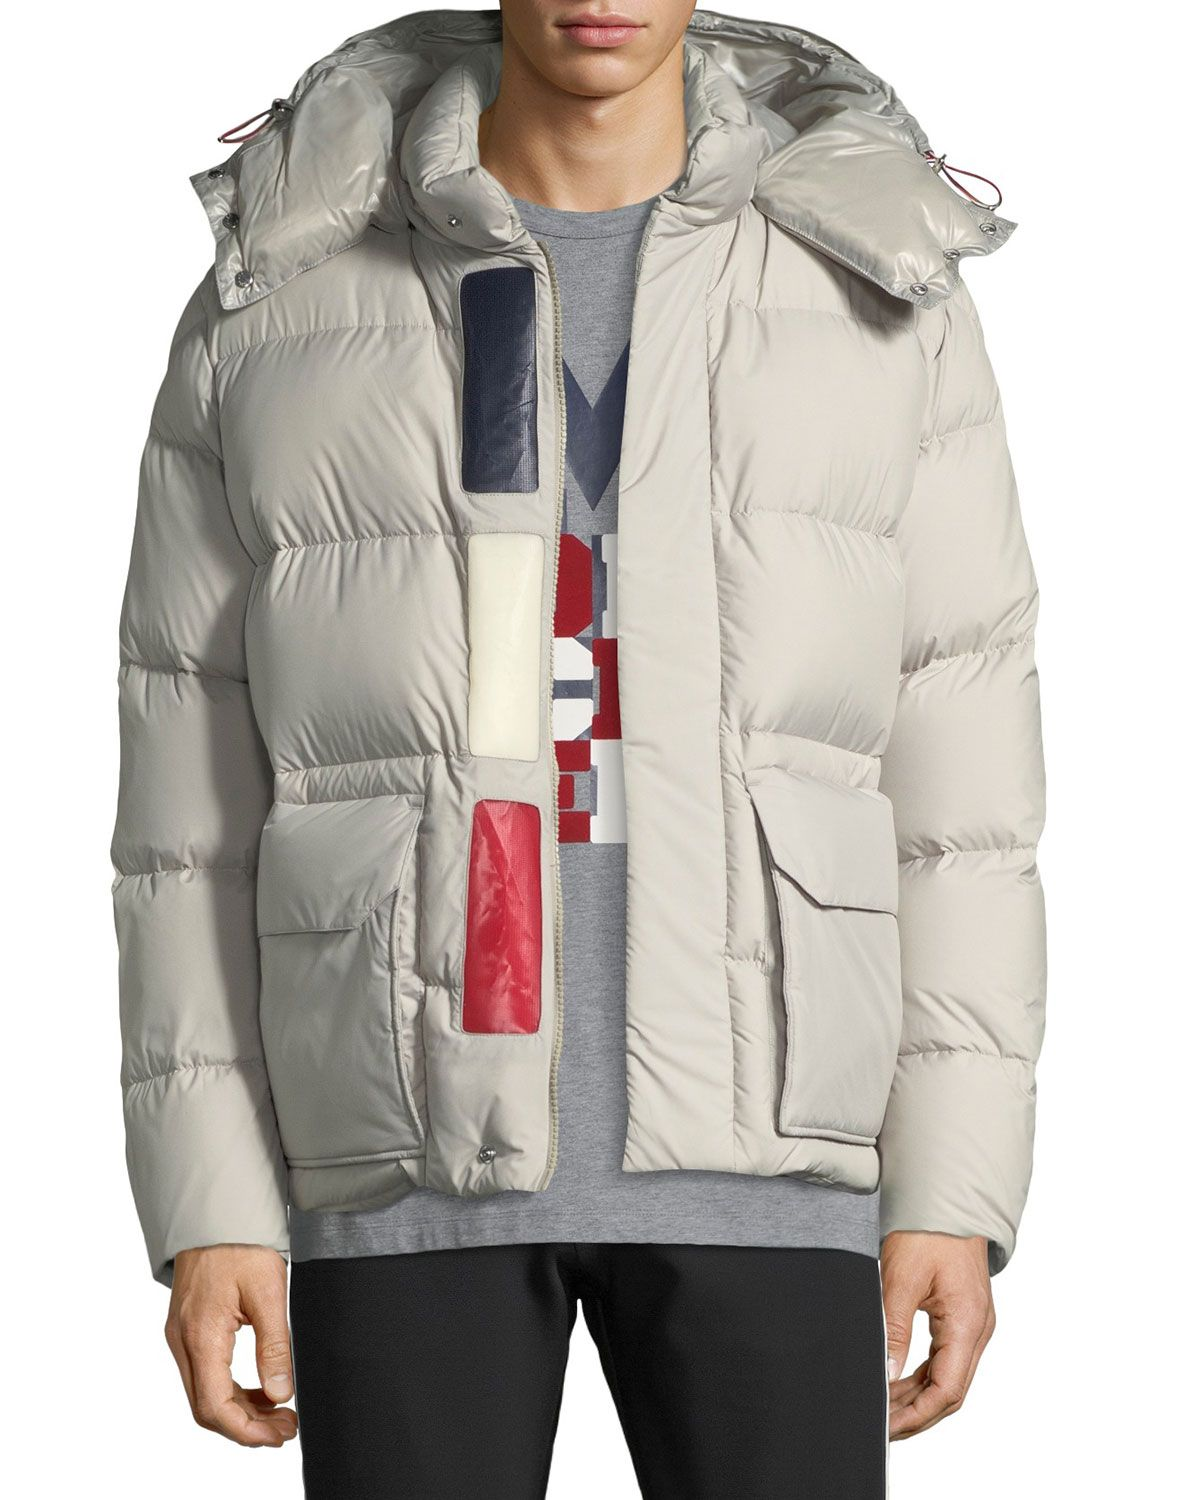 MONCLER GLACIER top quality down jacket 150usd | Jackets